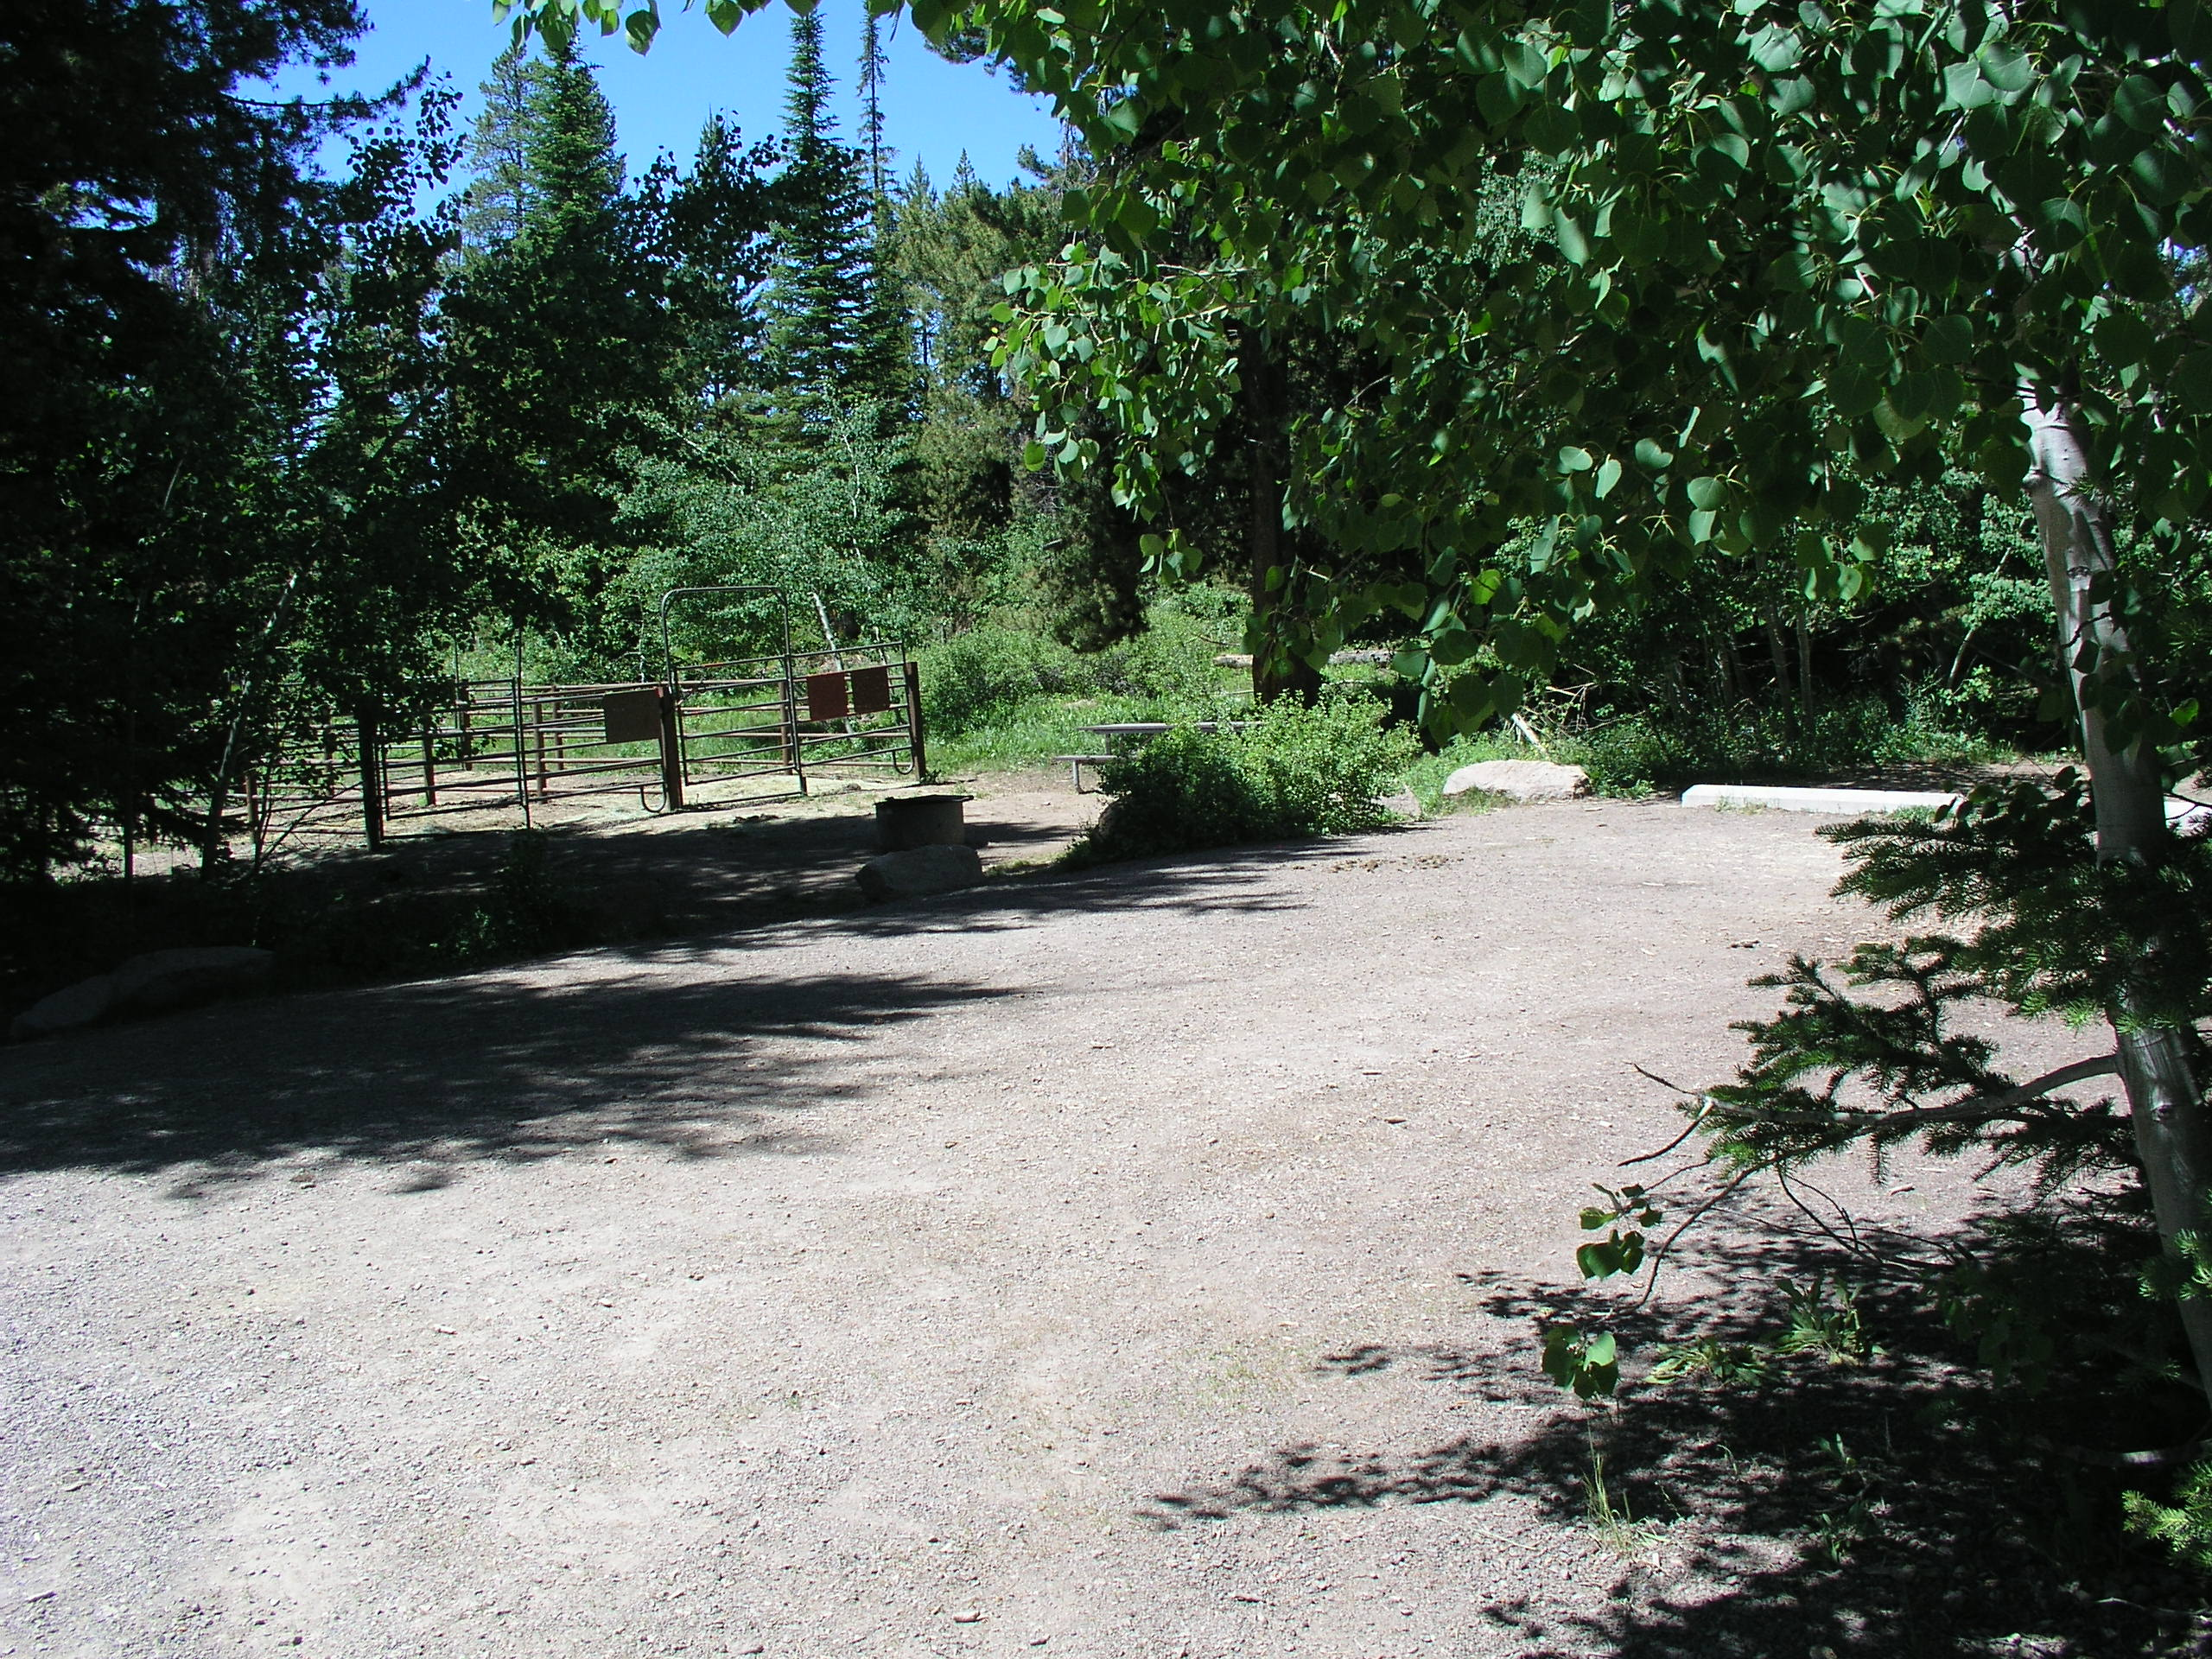 Corrals, picnic table, fire ring, trees